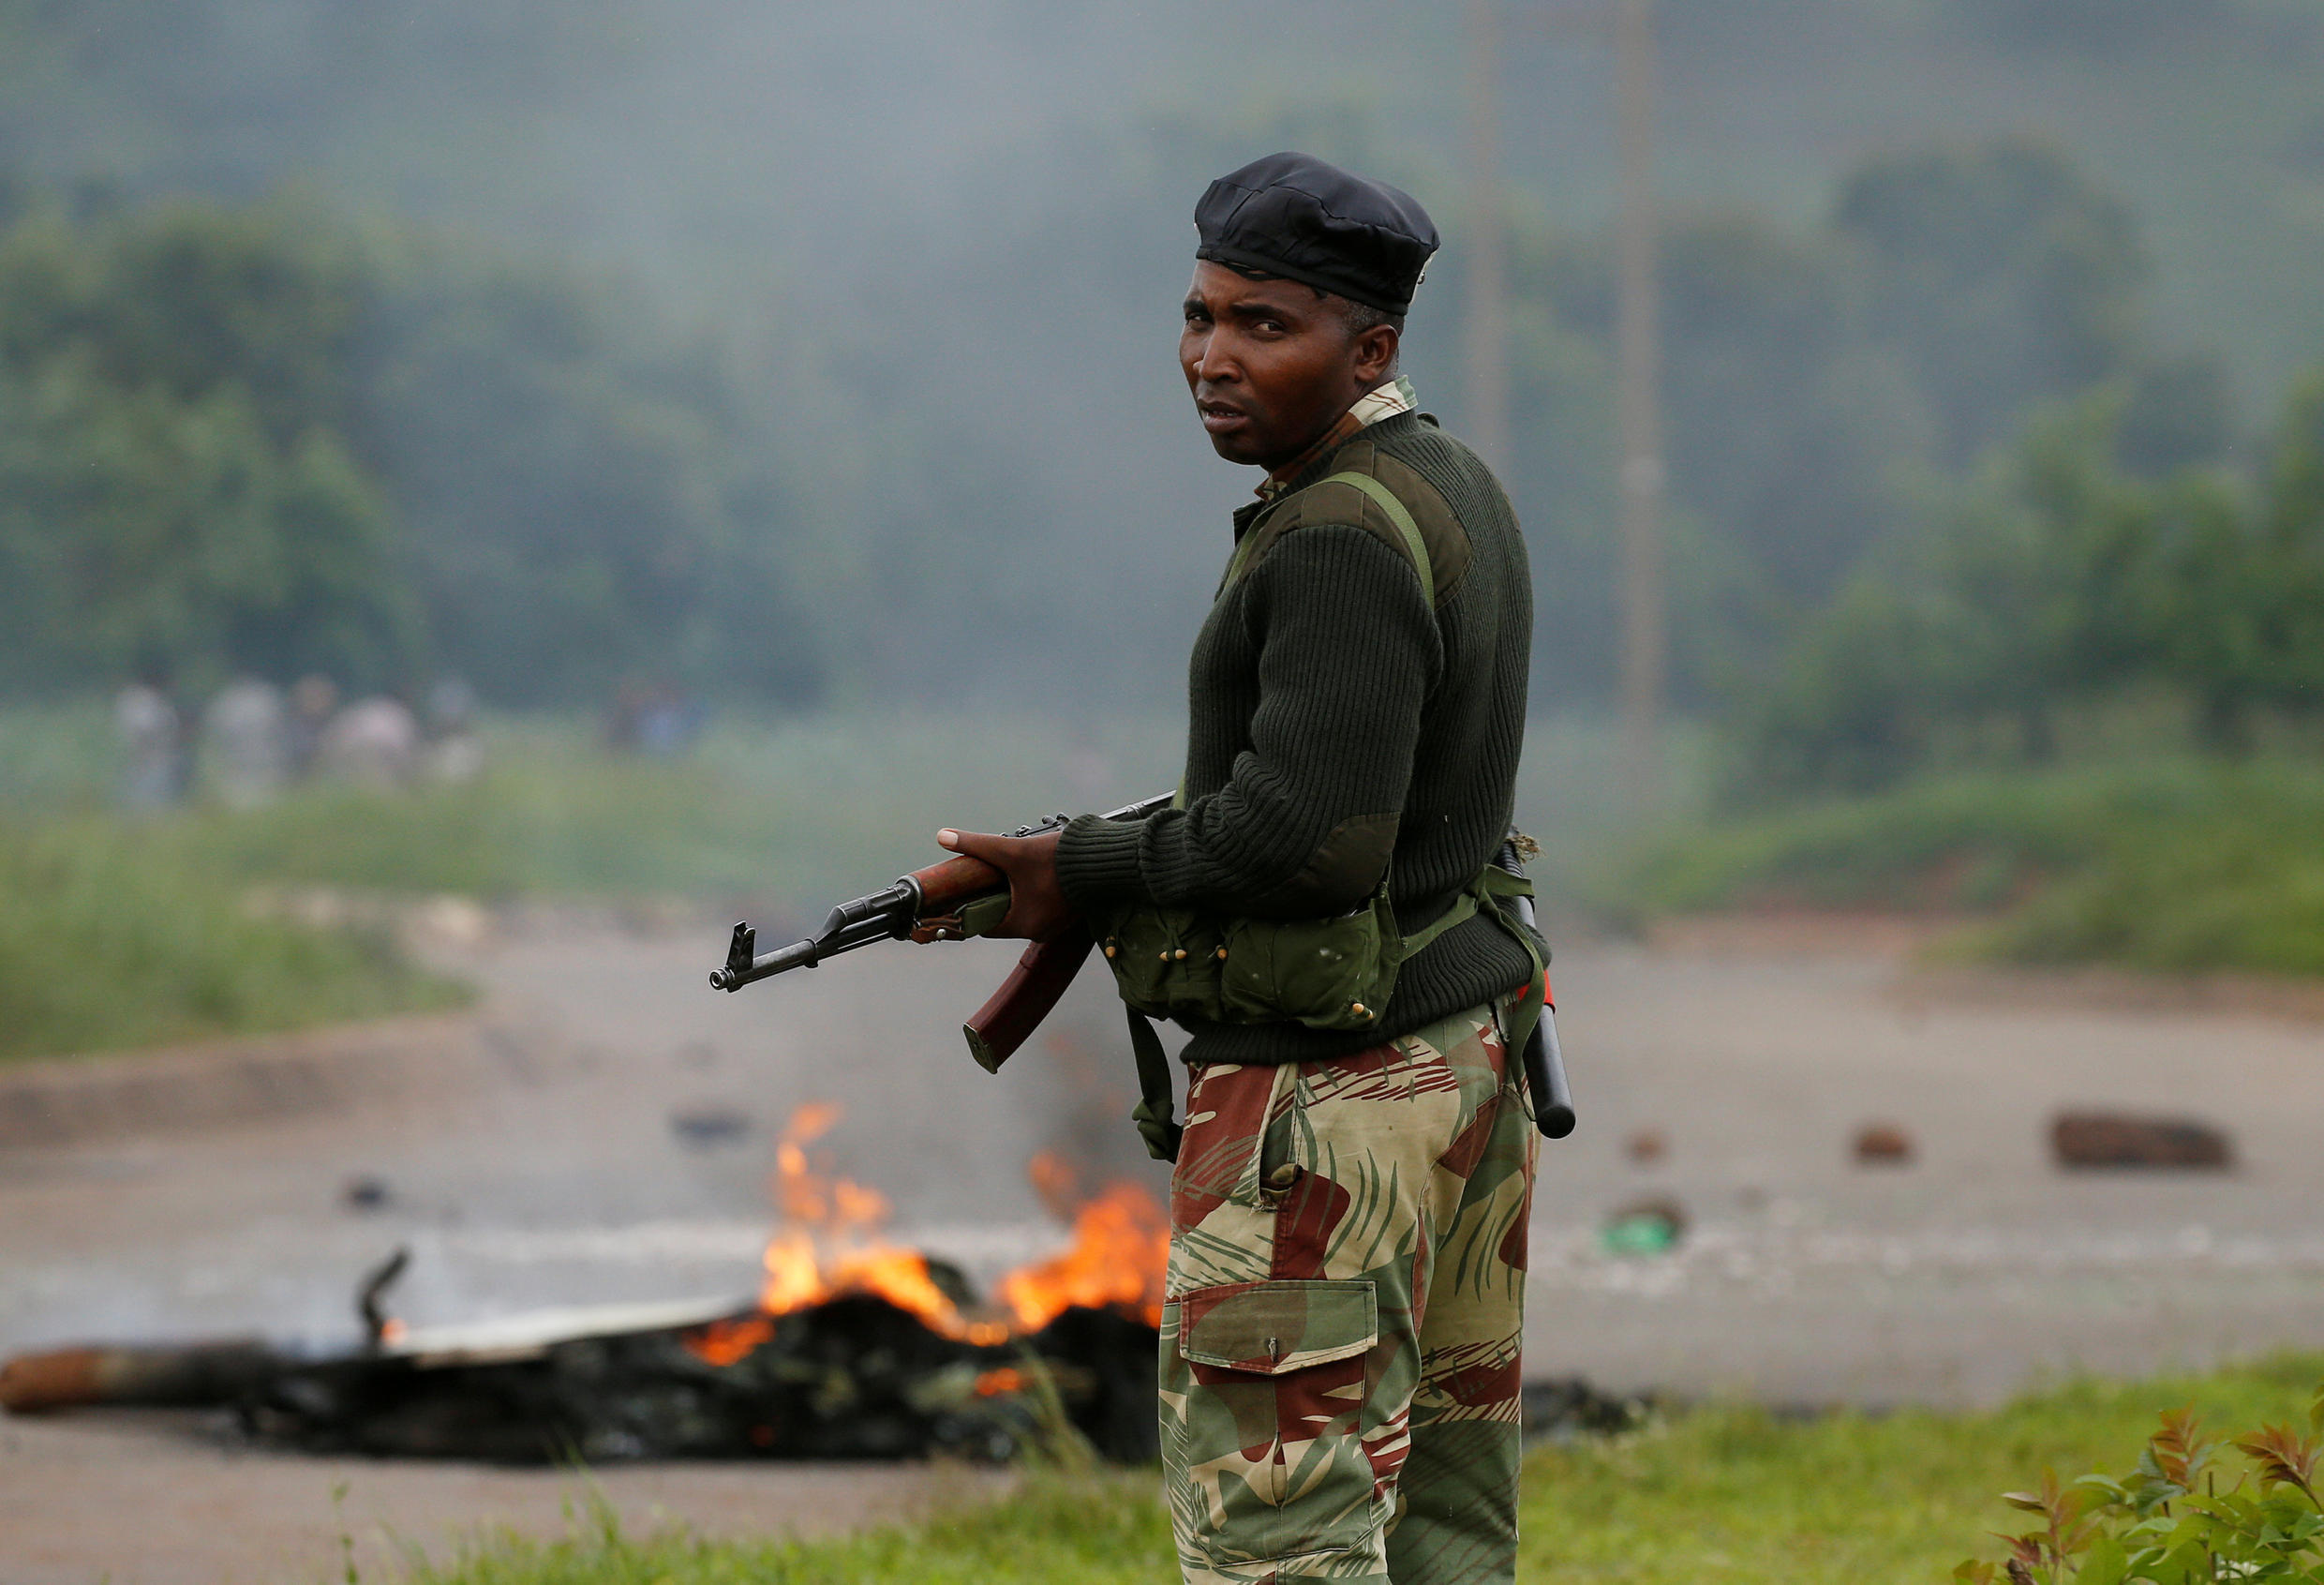 A soldier stands before a burning barricade during protests in Harare, Zimbabwe, January 15, 2019